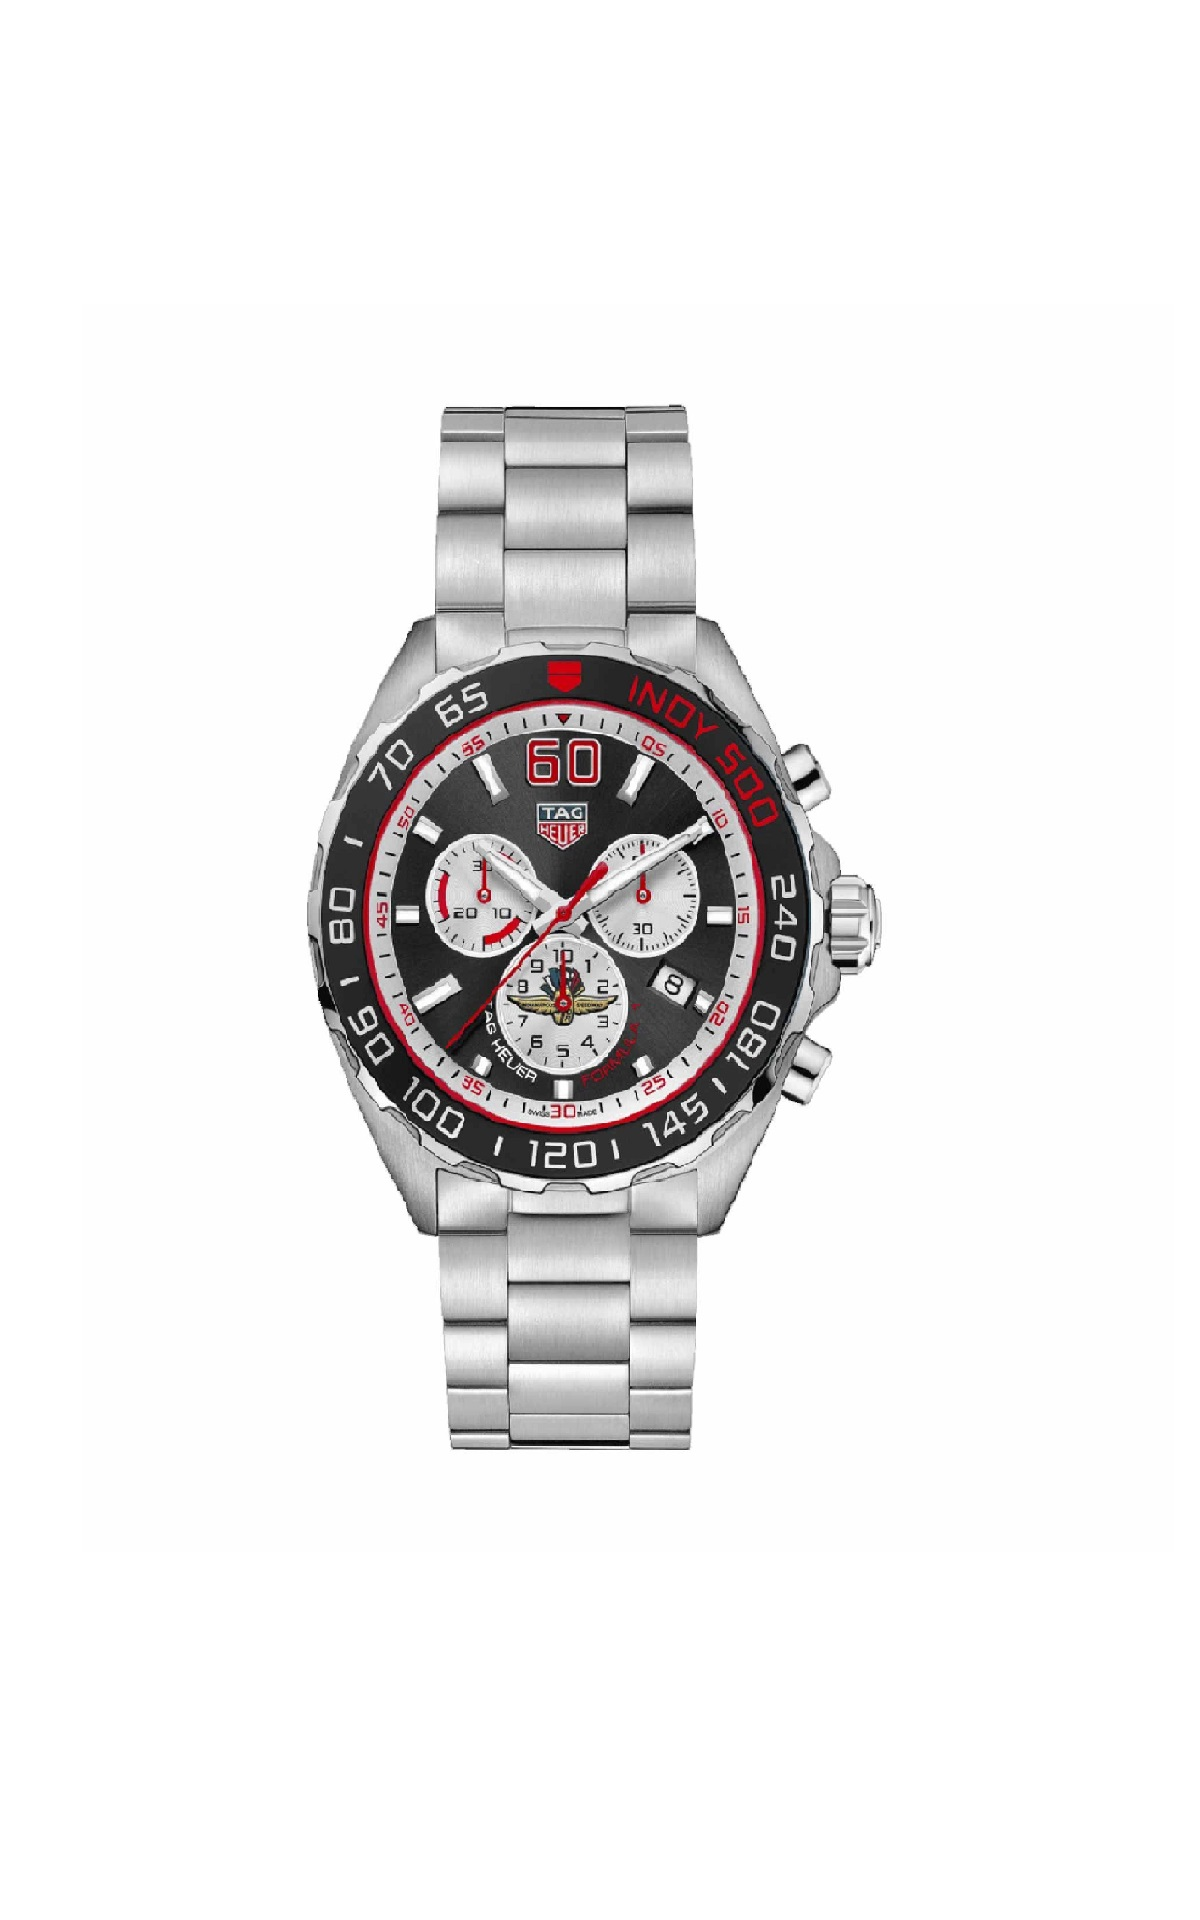 FORMULA 1 43mm QUARTZ CHRONOGRAPH SPECIAL EDITION INDY 500